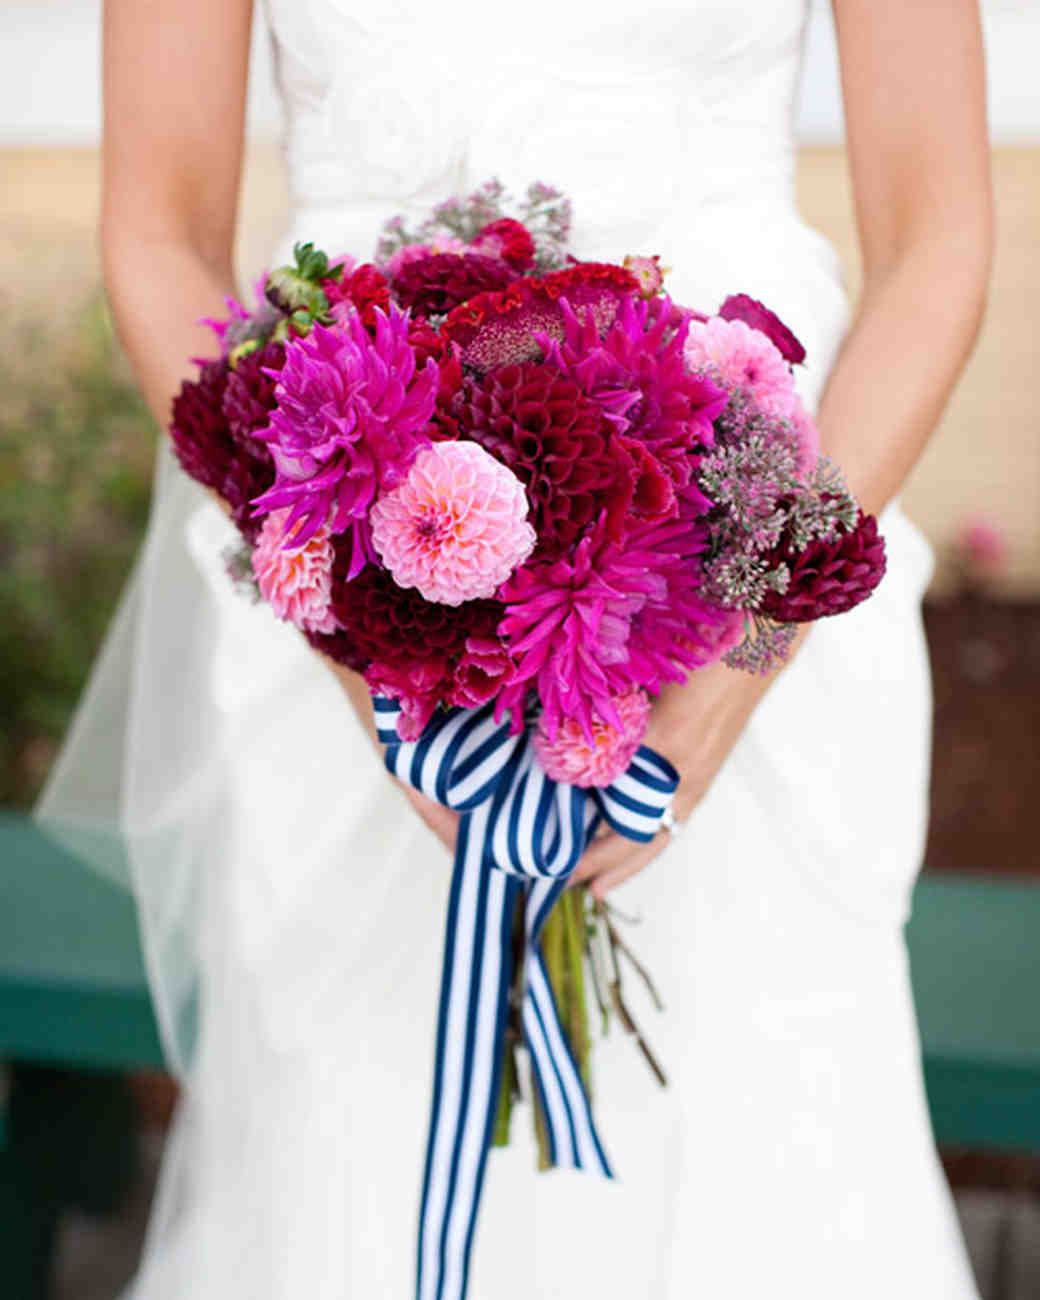 Unique non floral wedding bouquet ideas 10 instant bouquet upgrades izmirmasajfo